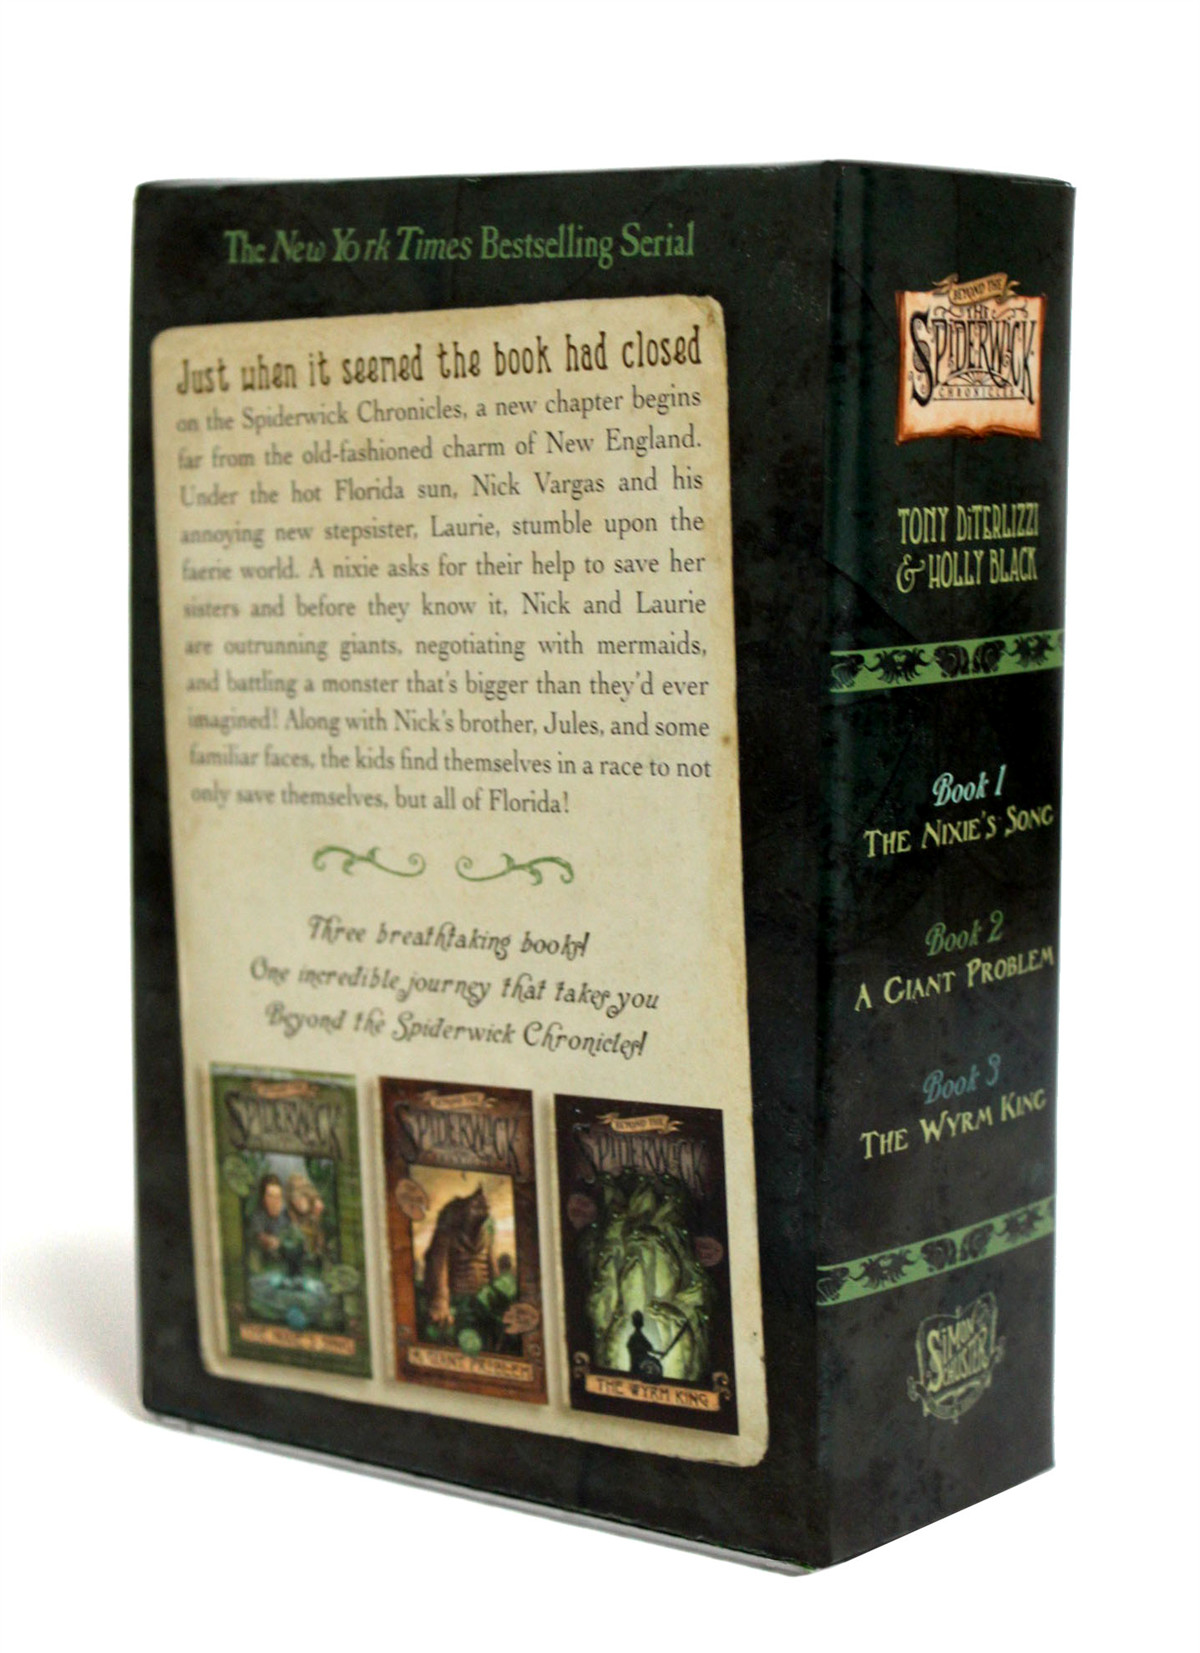 Beyond-the-spiderwick-chronicles-(boxed-set)-9781416990116.in01